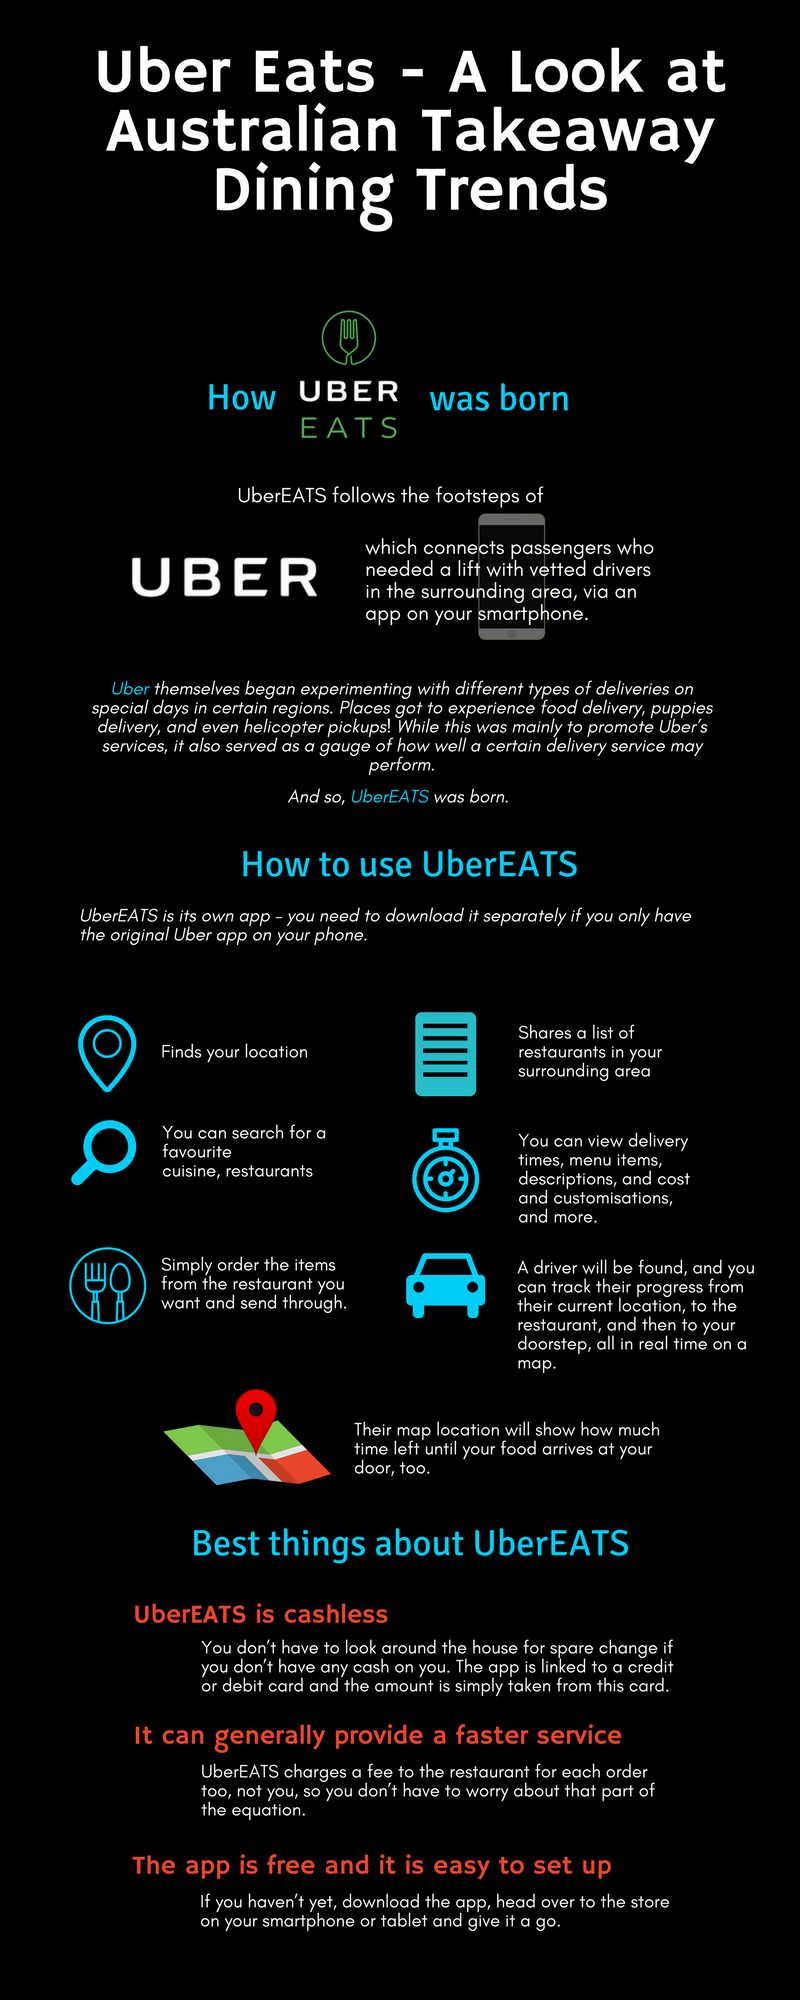 Uber Eats - What Is It A Look at Australian Takeaway Dining Trends